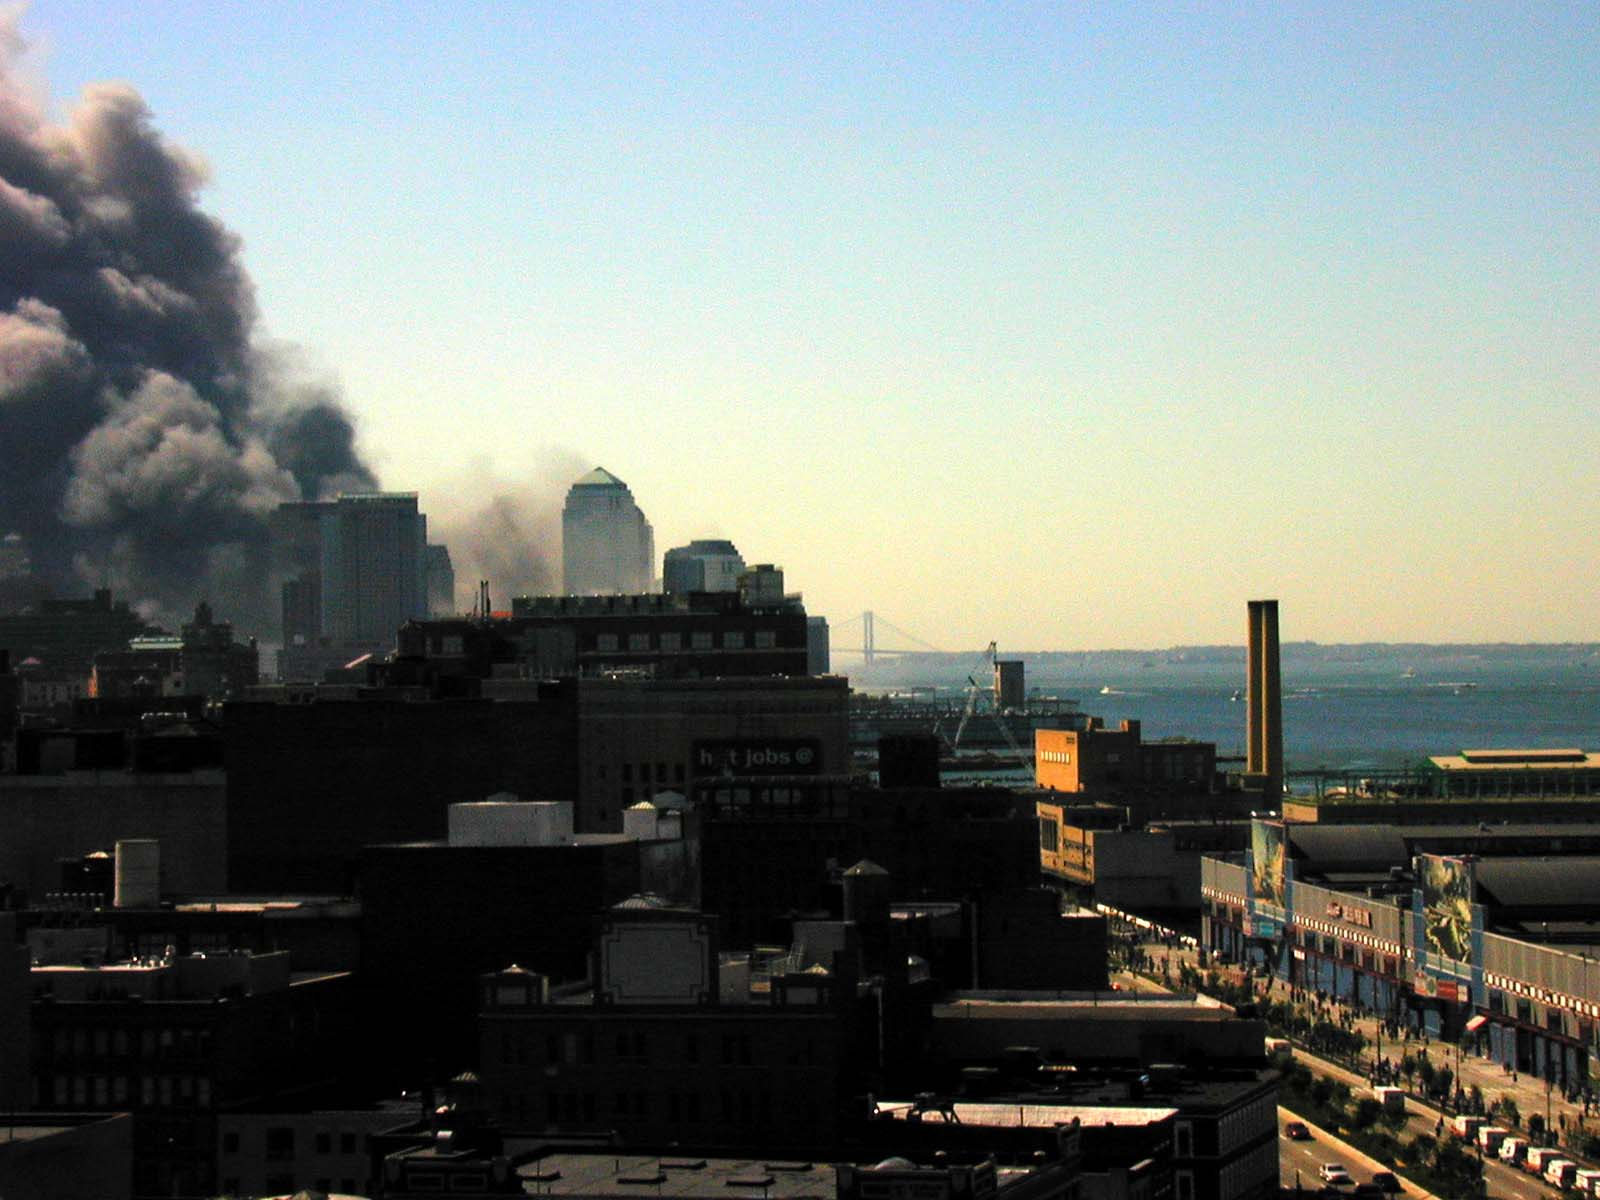 032 - 10.35AM - a thick dark plume of smoke, ambulances head down the west side highway